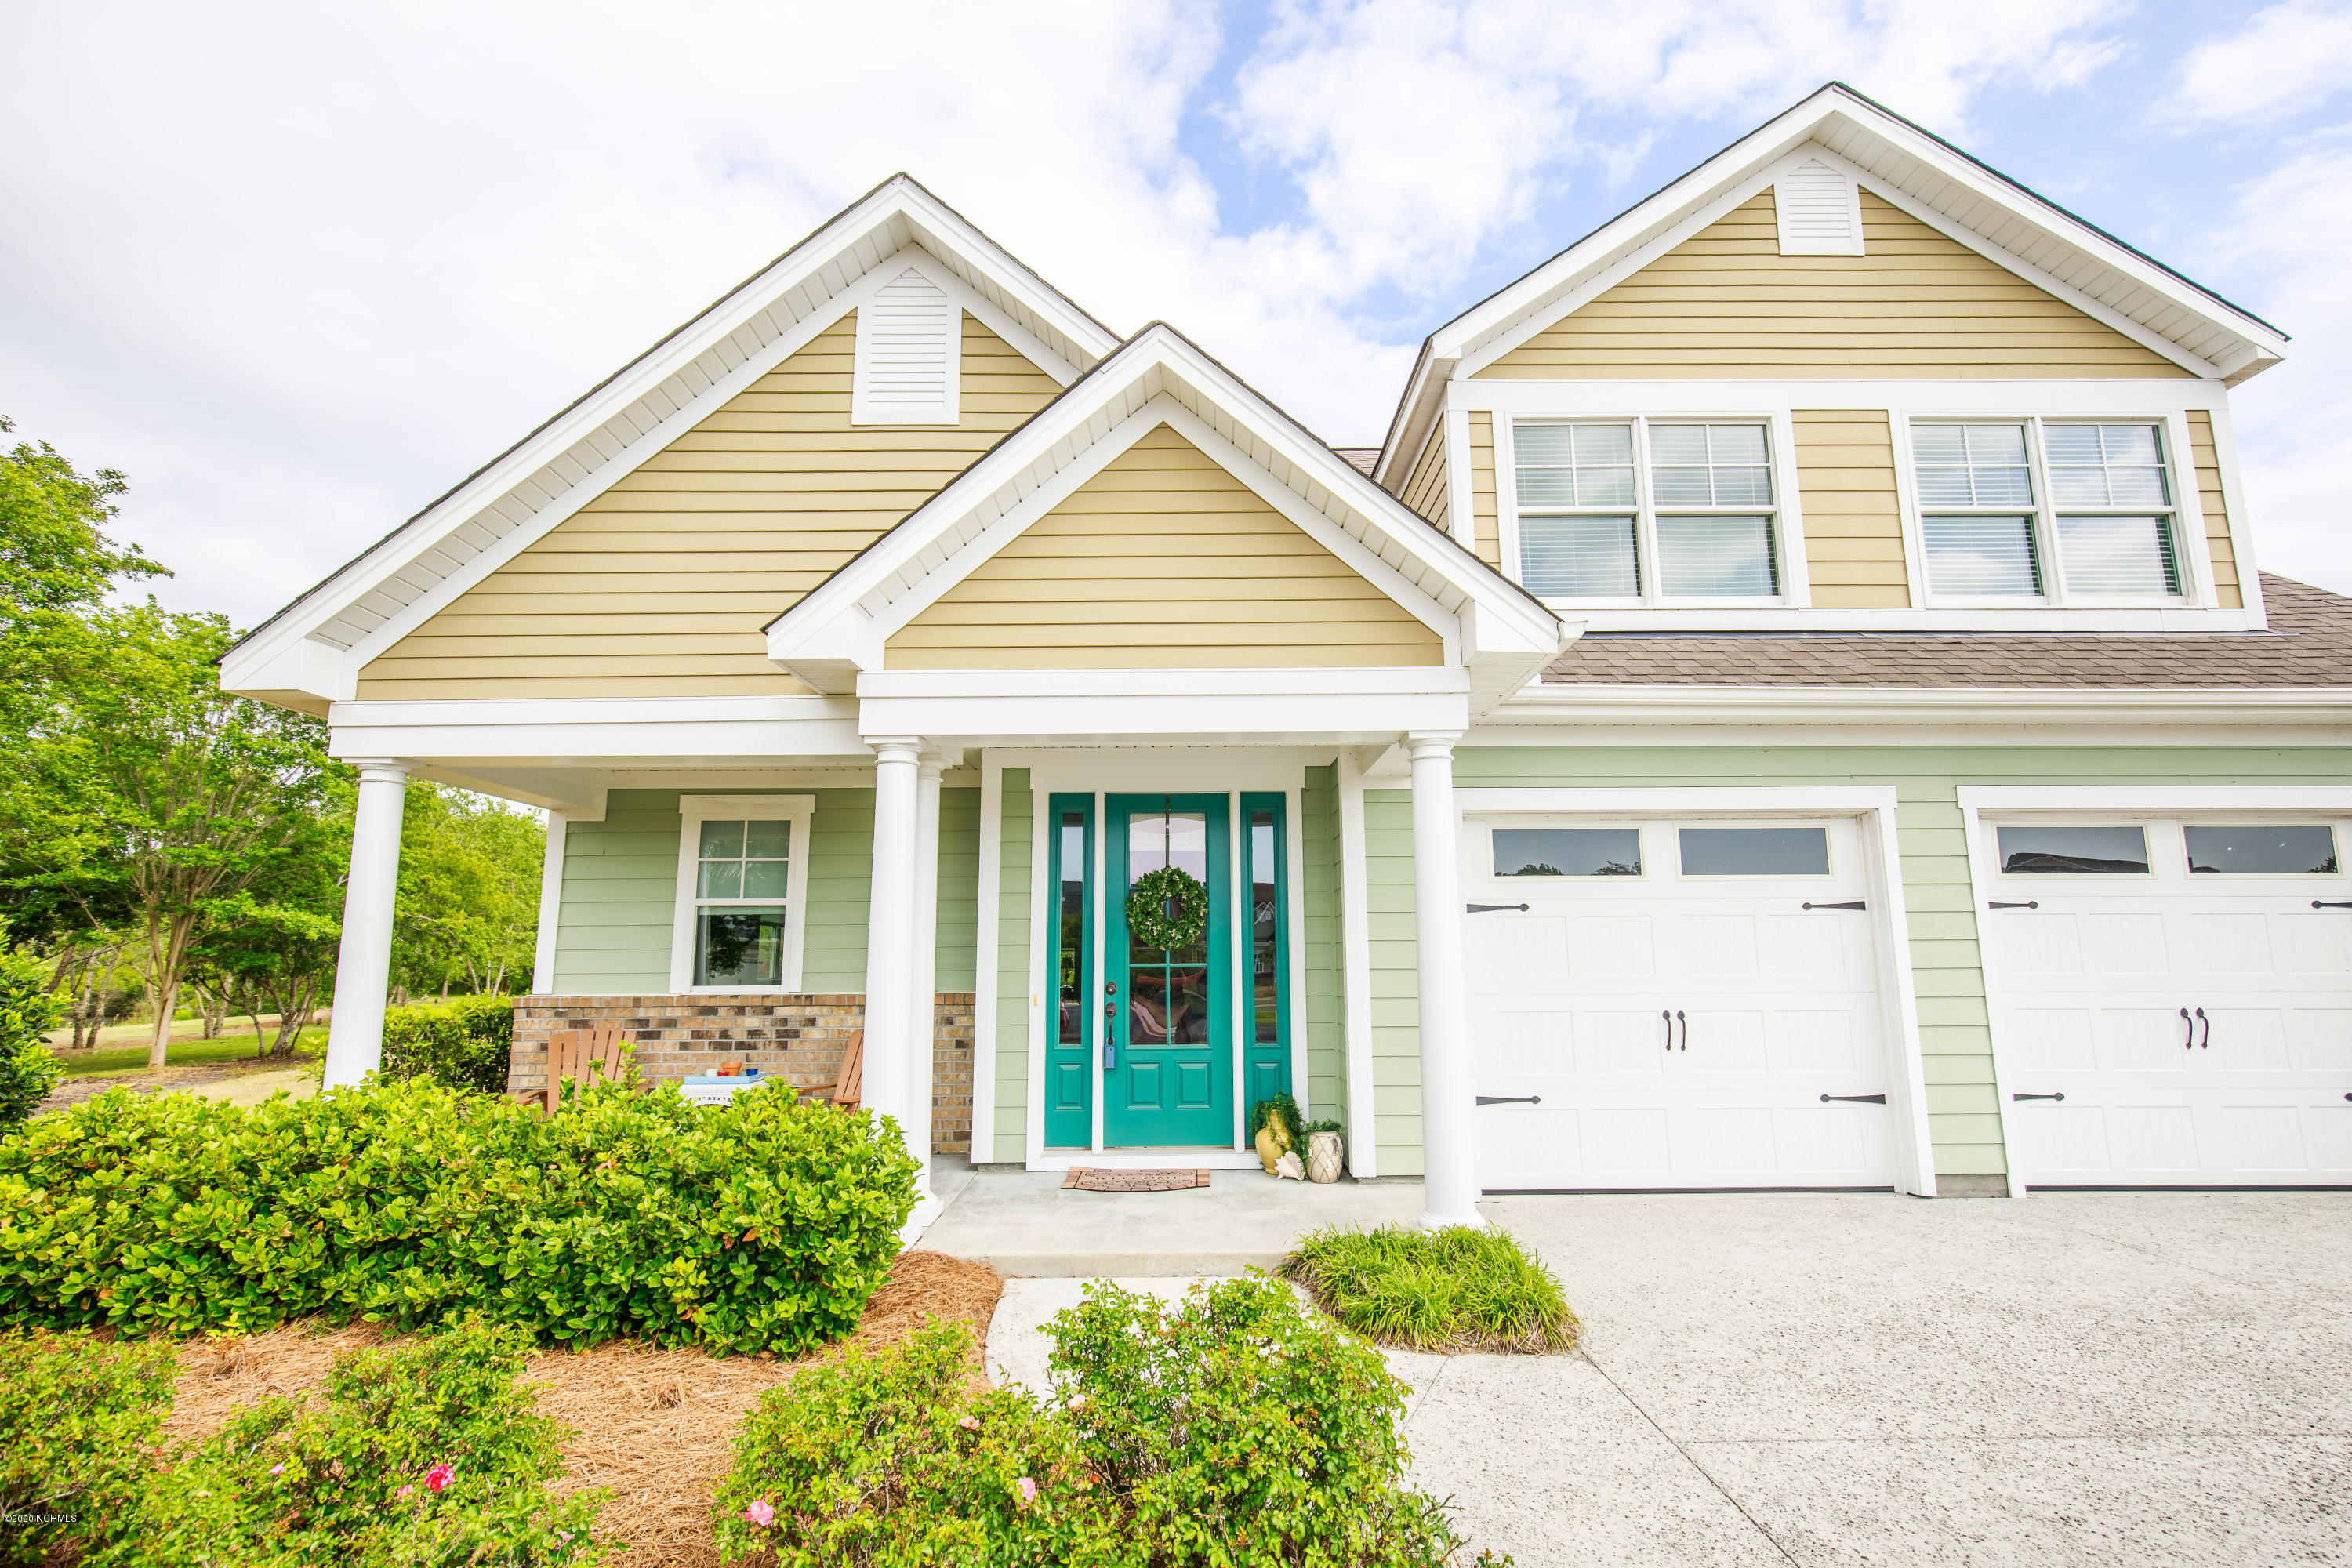 4318 Finley Court, Southport, North Carolina 28461, 3 Bedrooms Bedrooms, 8 Rooms Rooms,3 BathroomsBathrooms,Single family residence,For sale,Finley,100191679